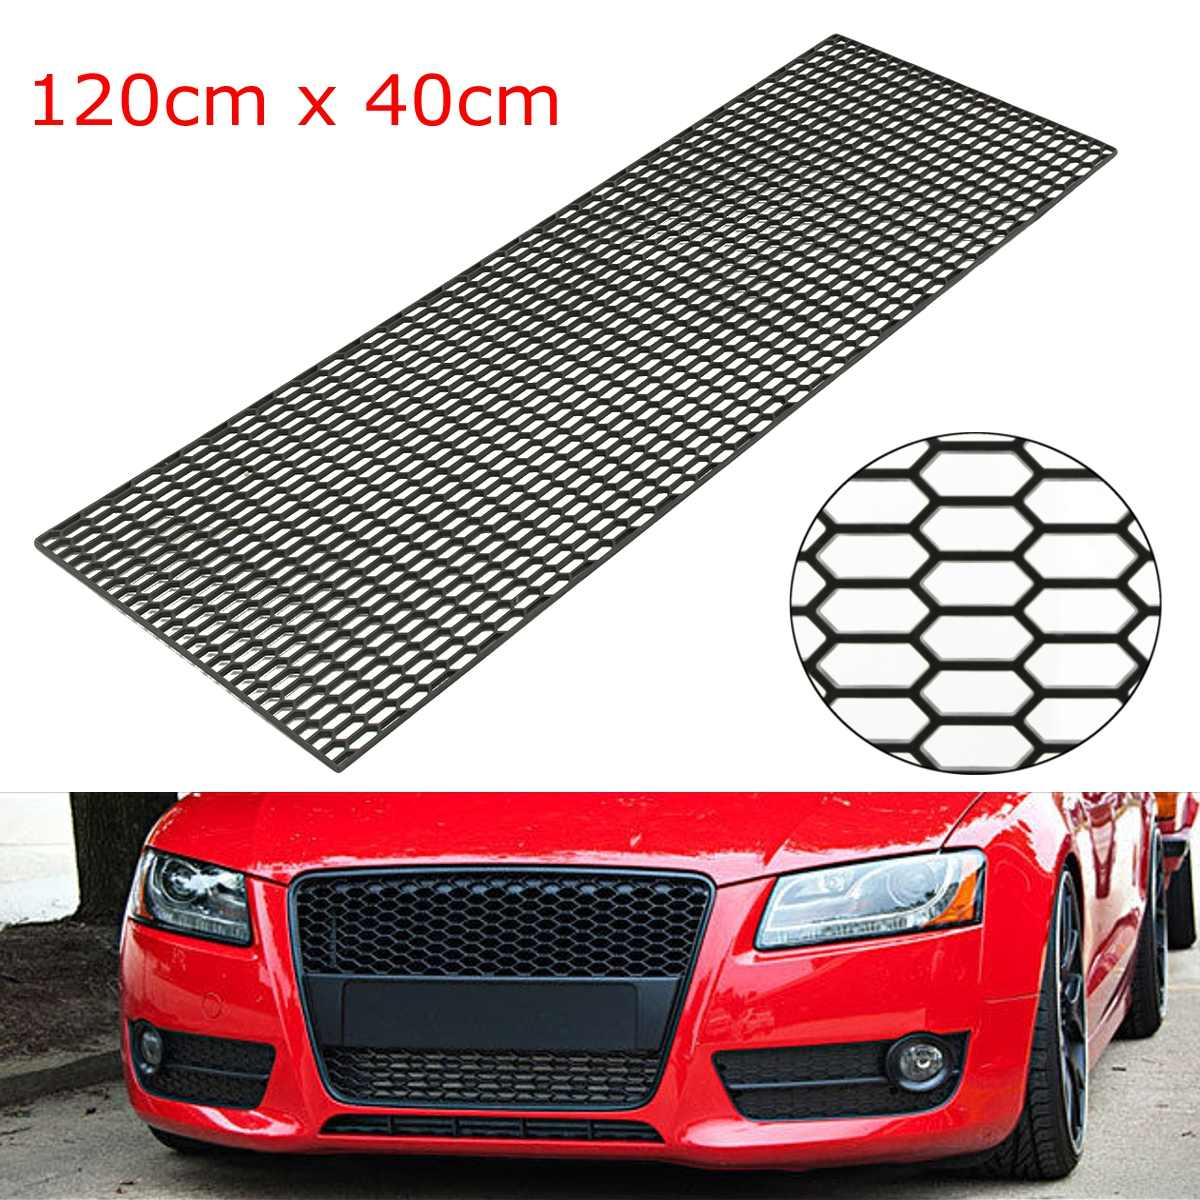 120X40cm Universal Car Styling Air Intake Racing Honeycomb Meshed Grille Spoiler Bumper Hood Vent Racing Grills